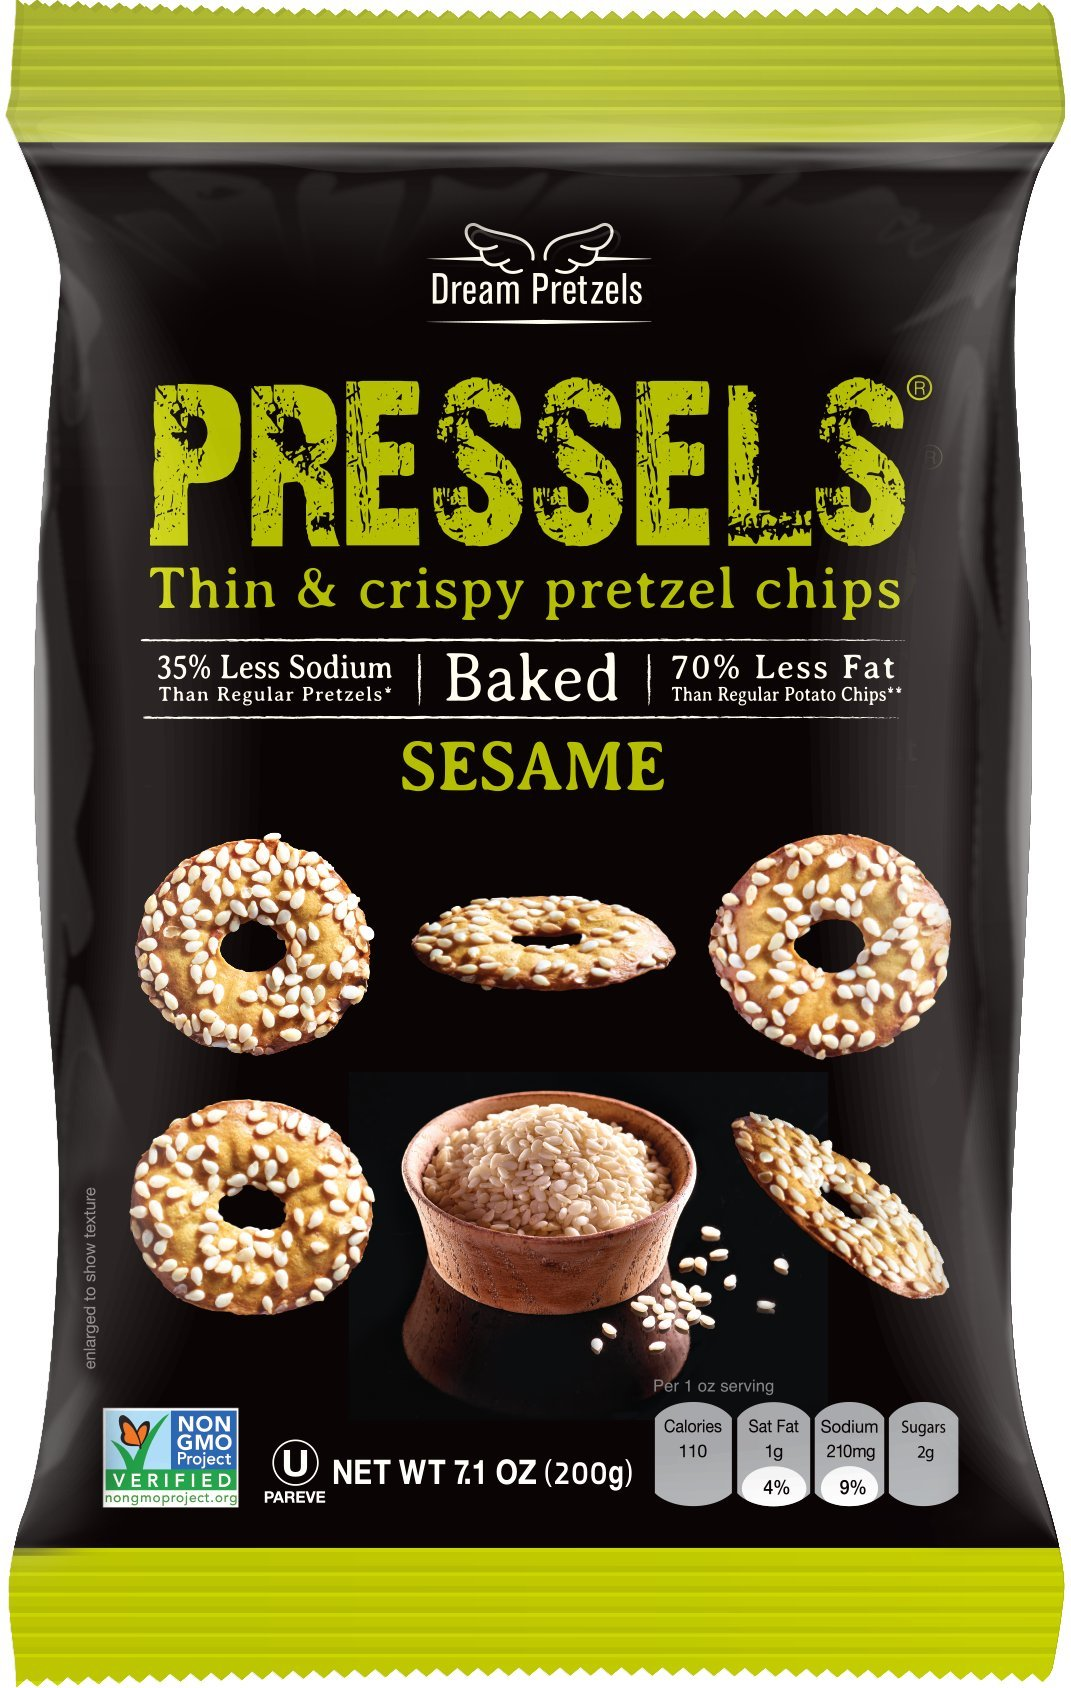 Dream Pretzel Chip Pressel Sesame natural, 7.1 oz